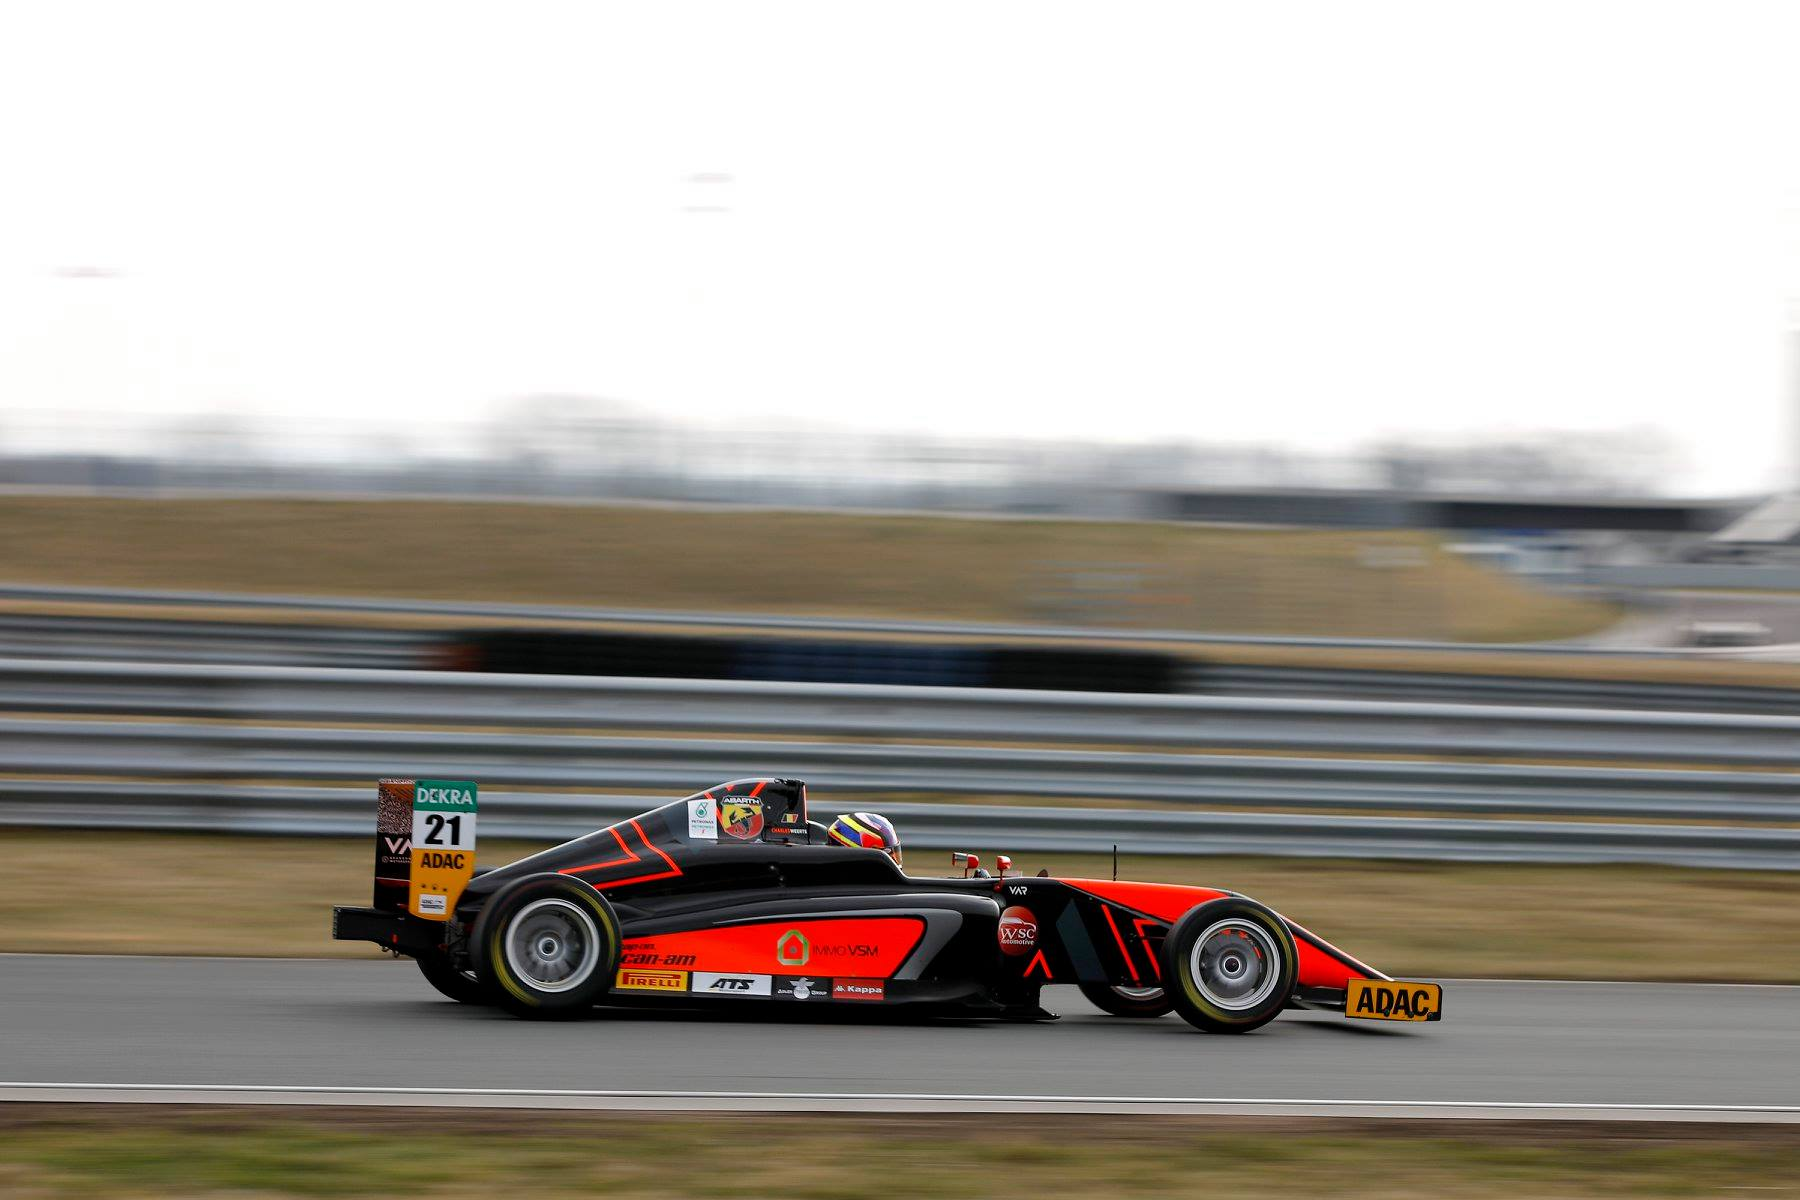 formula 4 uae - news latest - results from #9